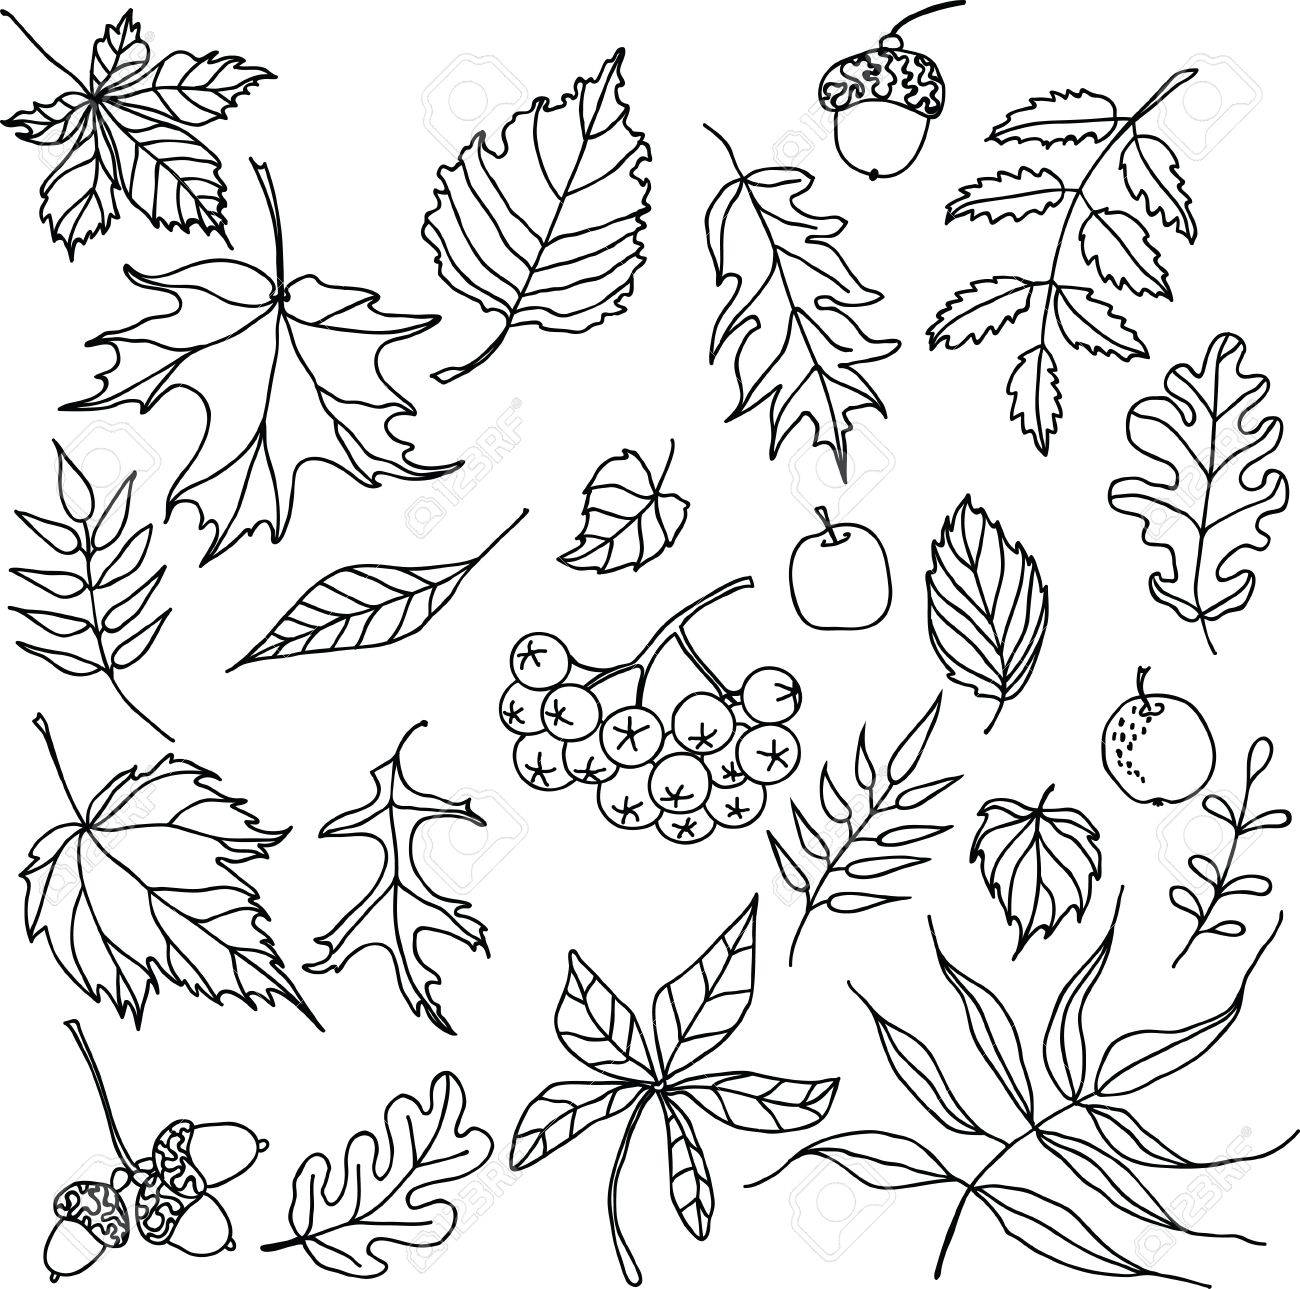 Autumn Leaves Doodles Set Royalty Free Cliparts Vectors And Stock Illustration Image 18600323